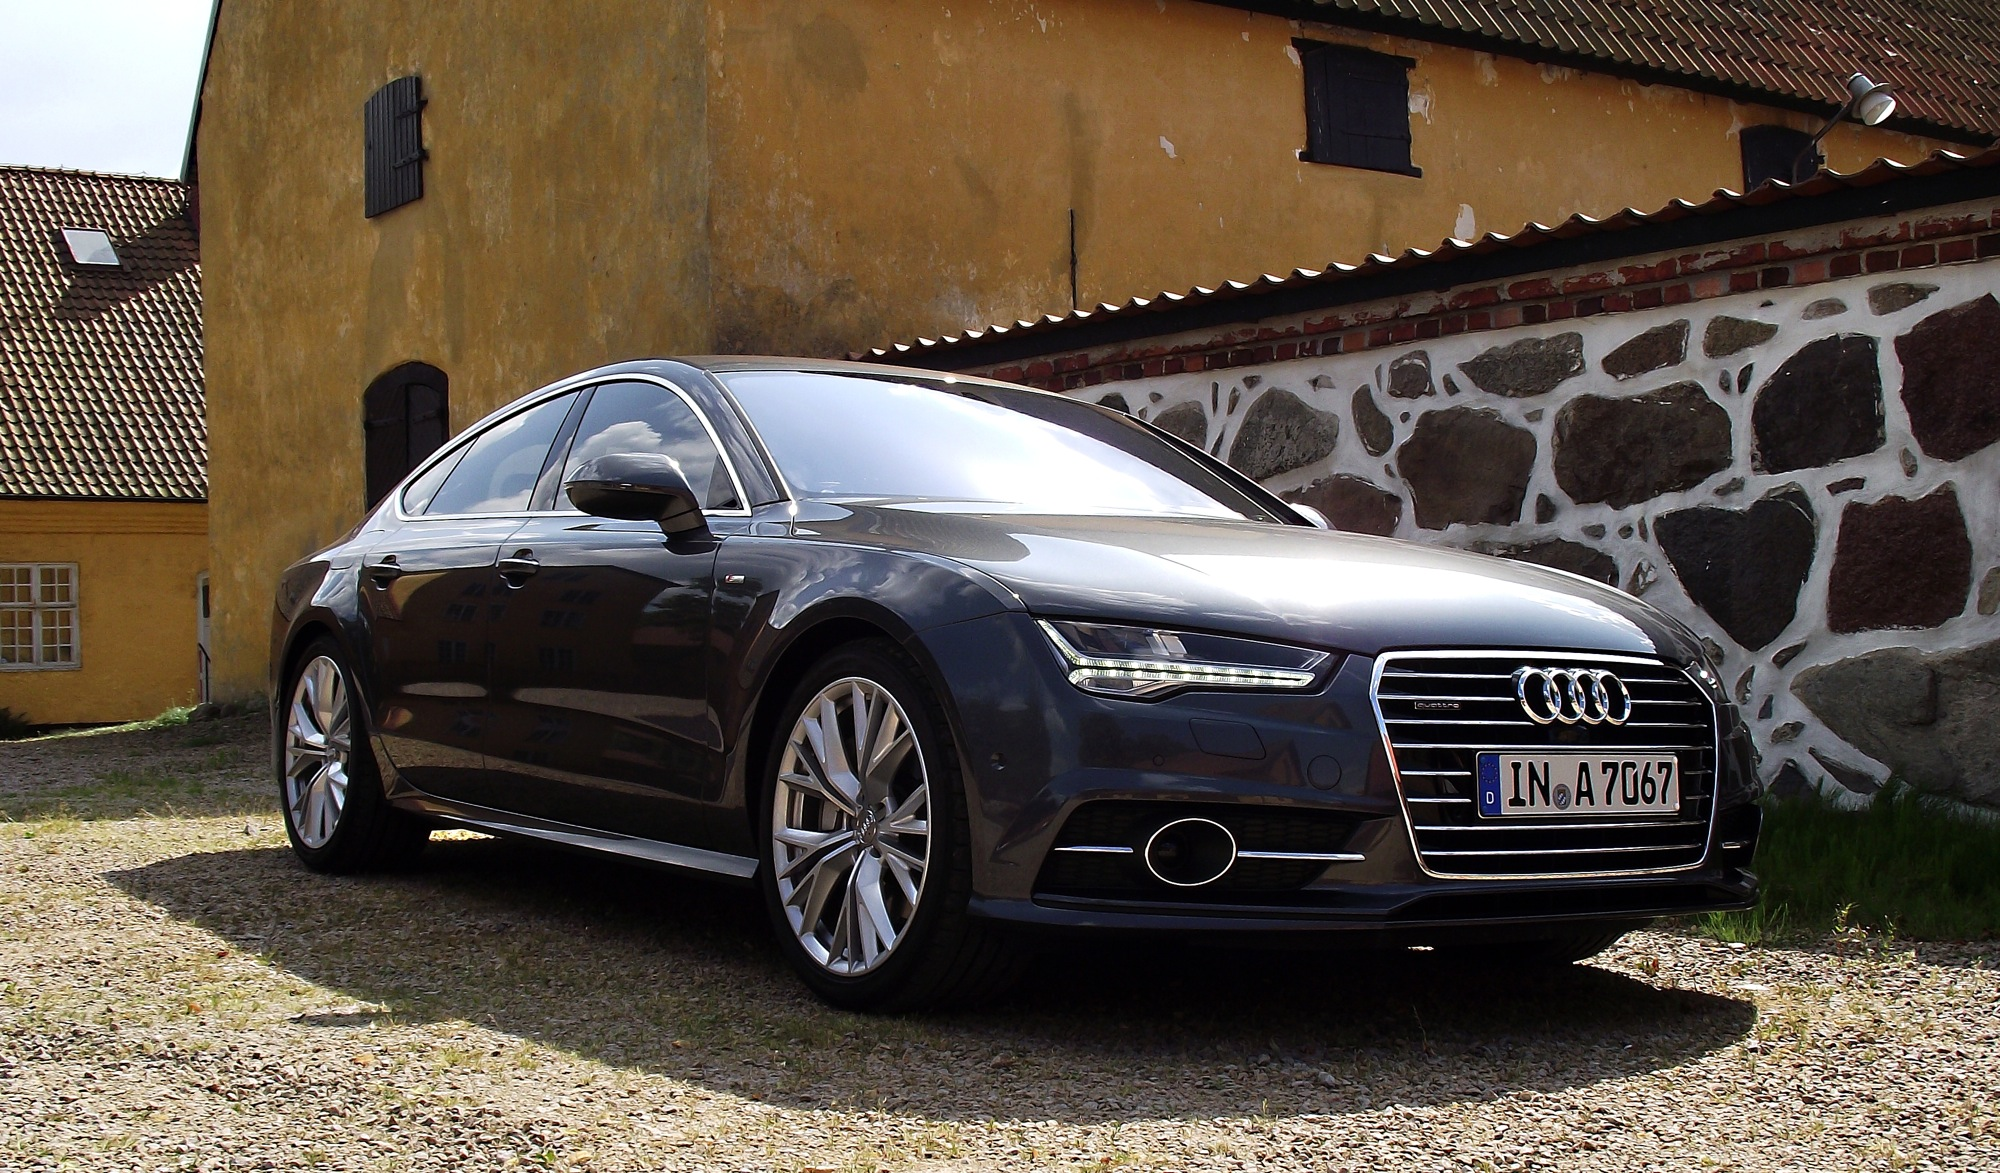 file 2014 audi a7 sportback typ 4g facelift 3 0 tdi. Black Bedroom Furniture Sets. Home Design Ideas